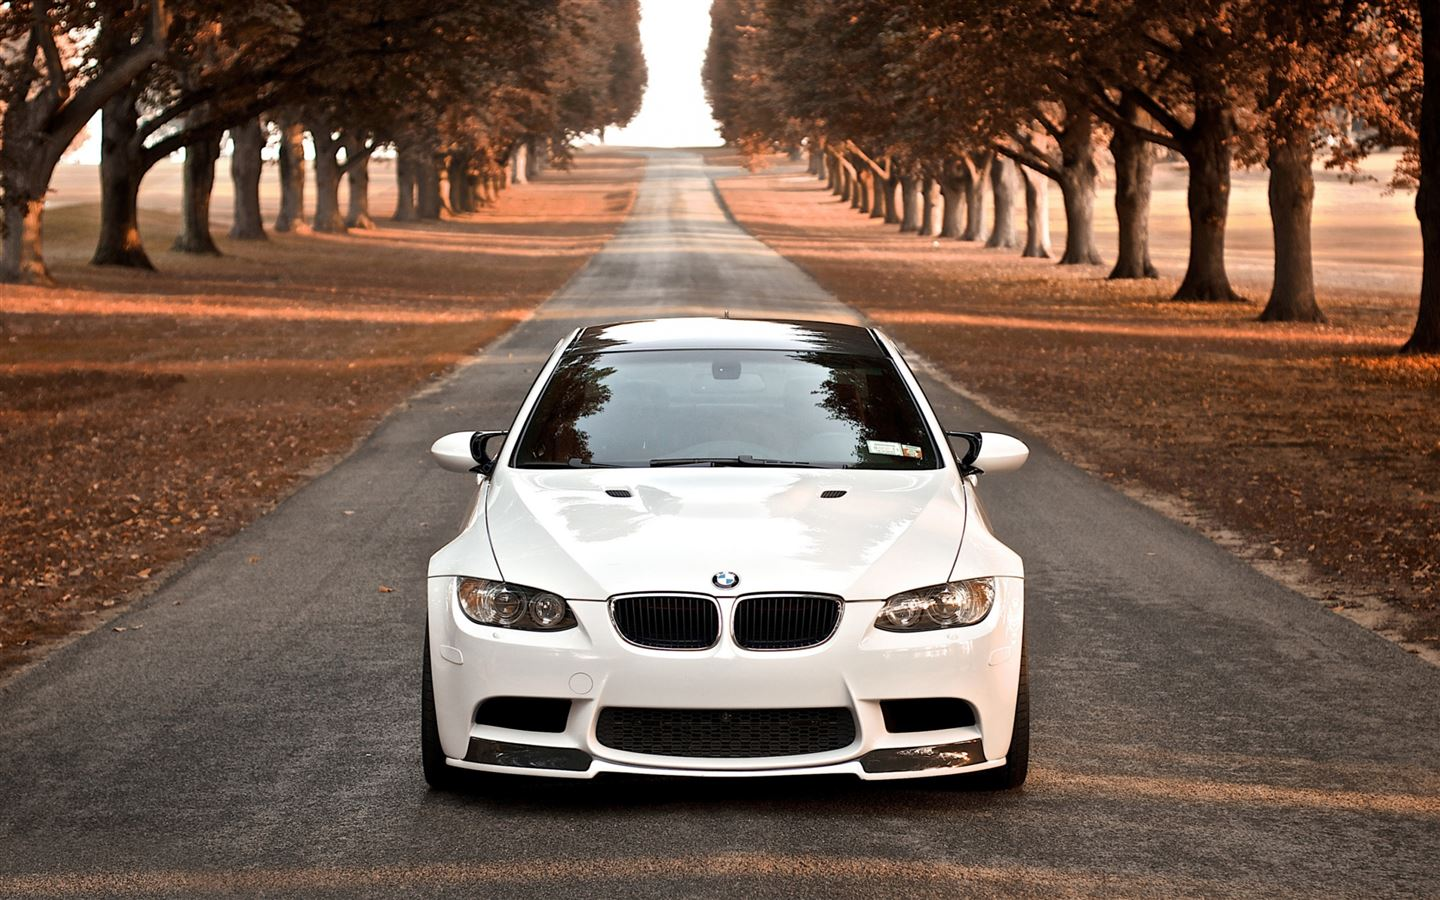 Bmw M3 Fall Mac Wallpaper Download | Free Mac Wallpapers ...